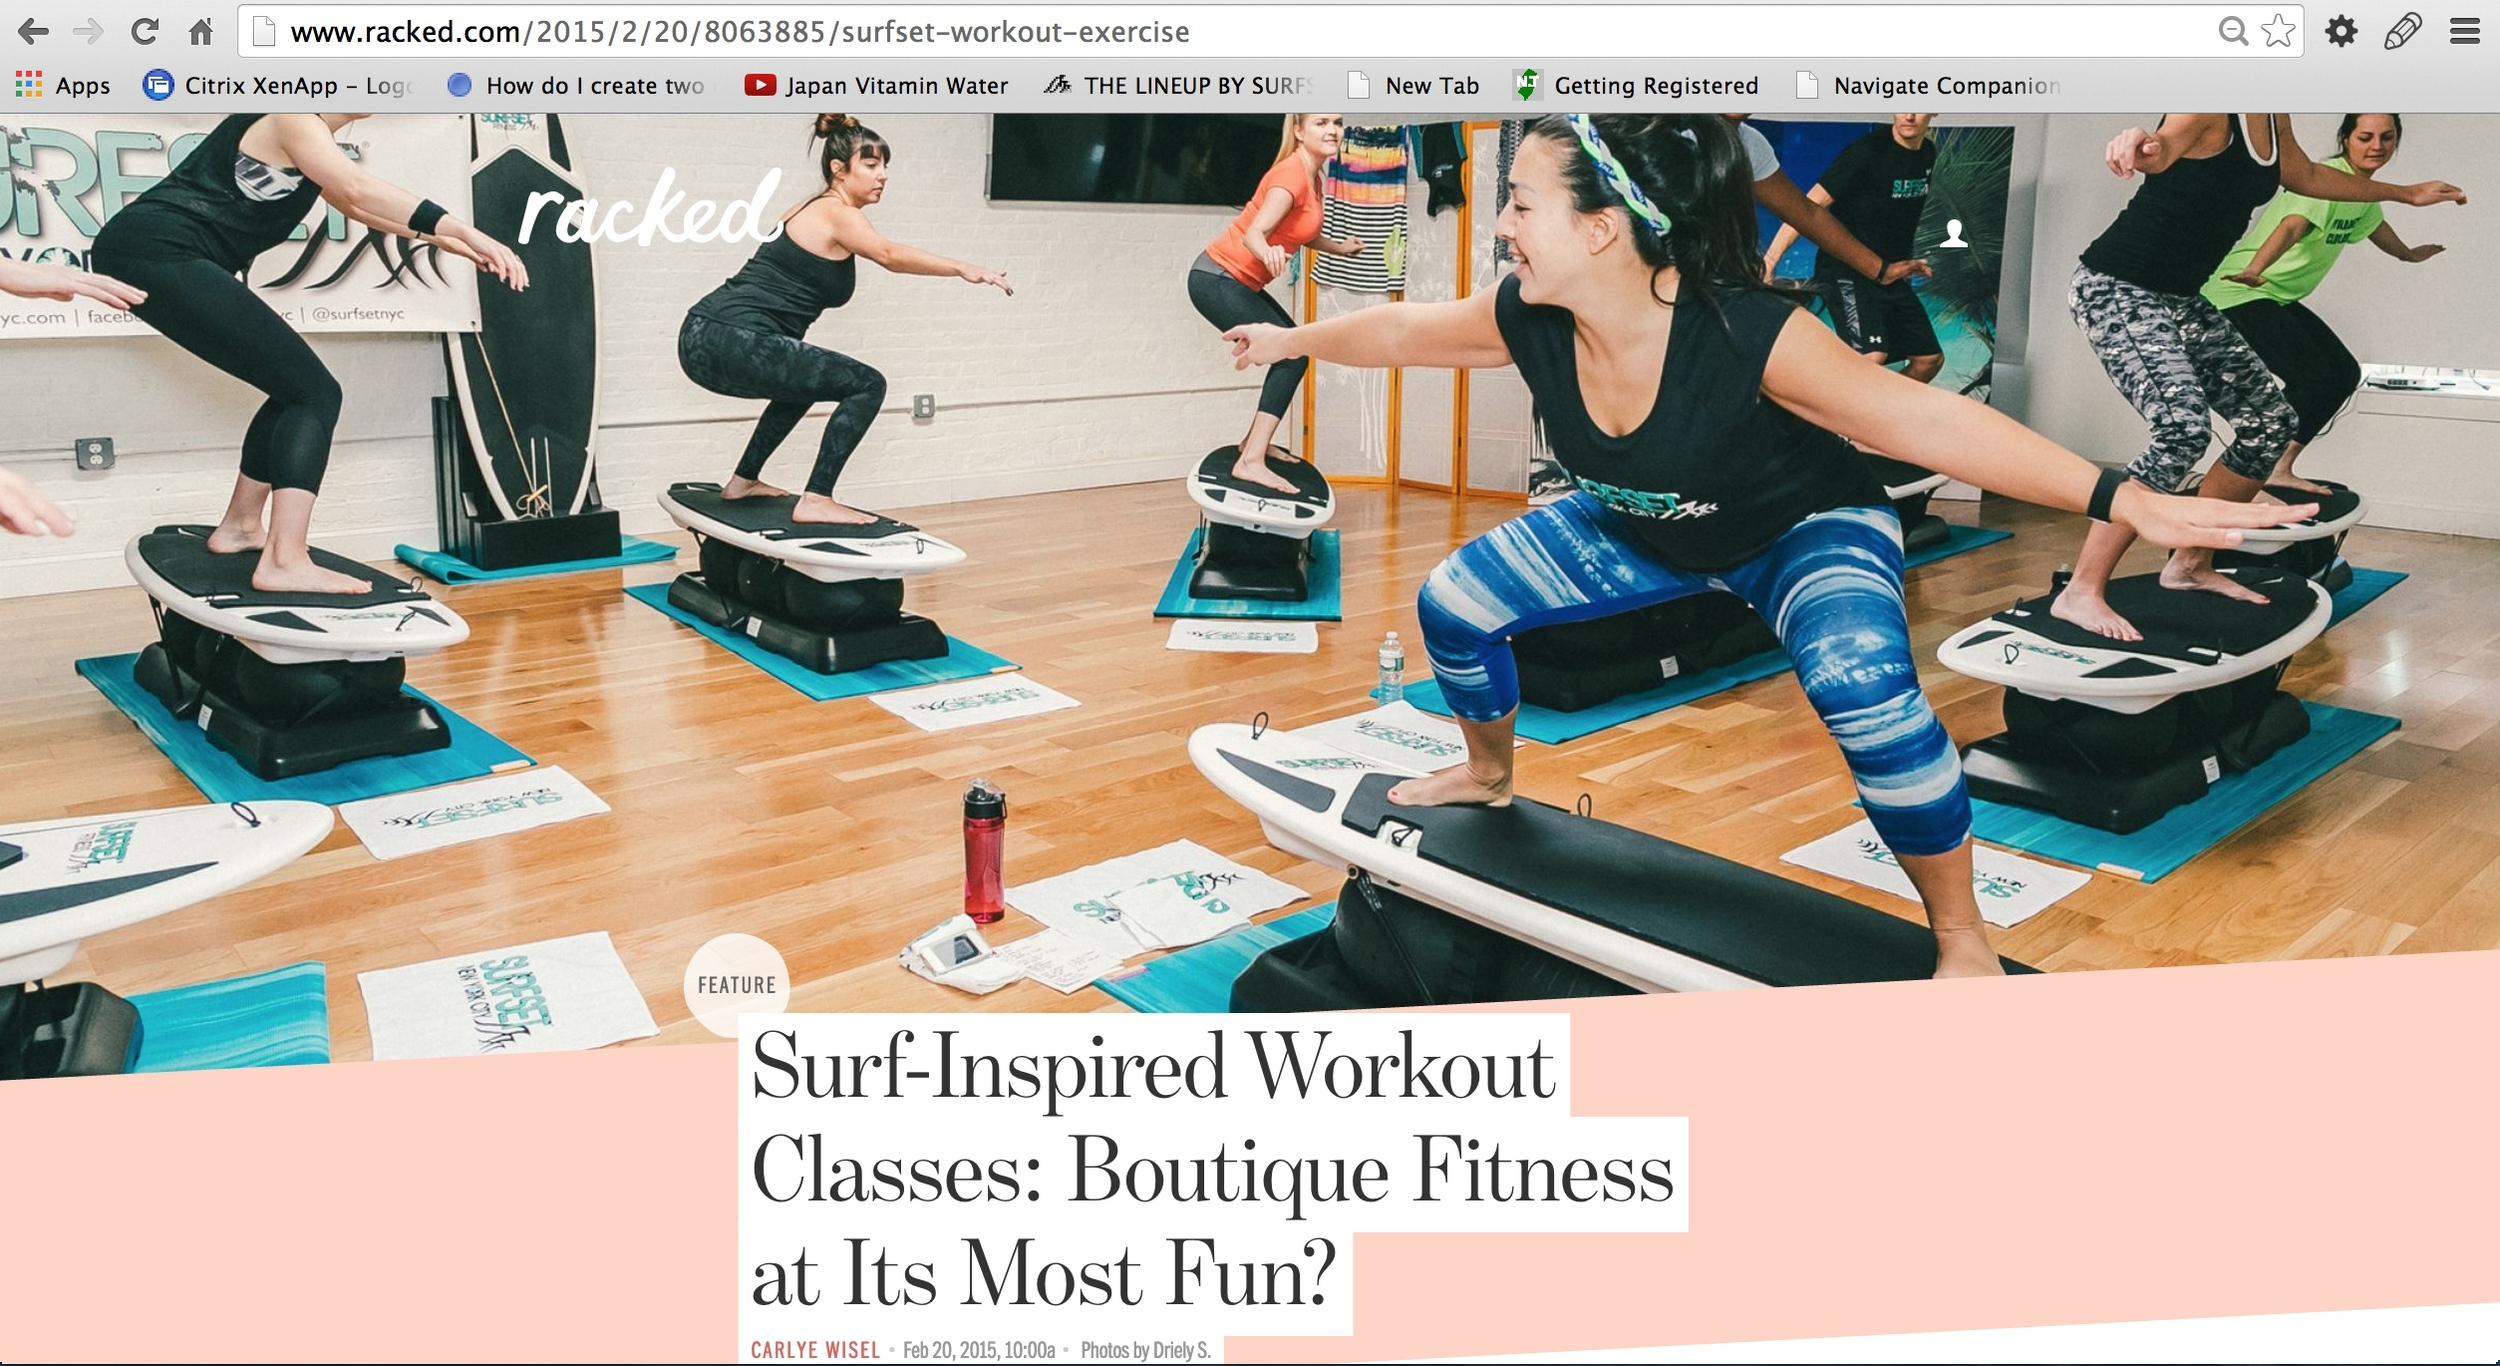 SURFSET NYC on Racked.com